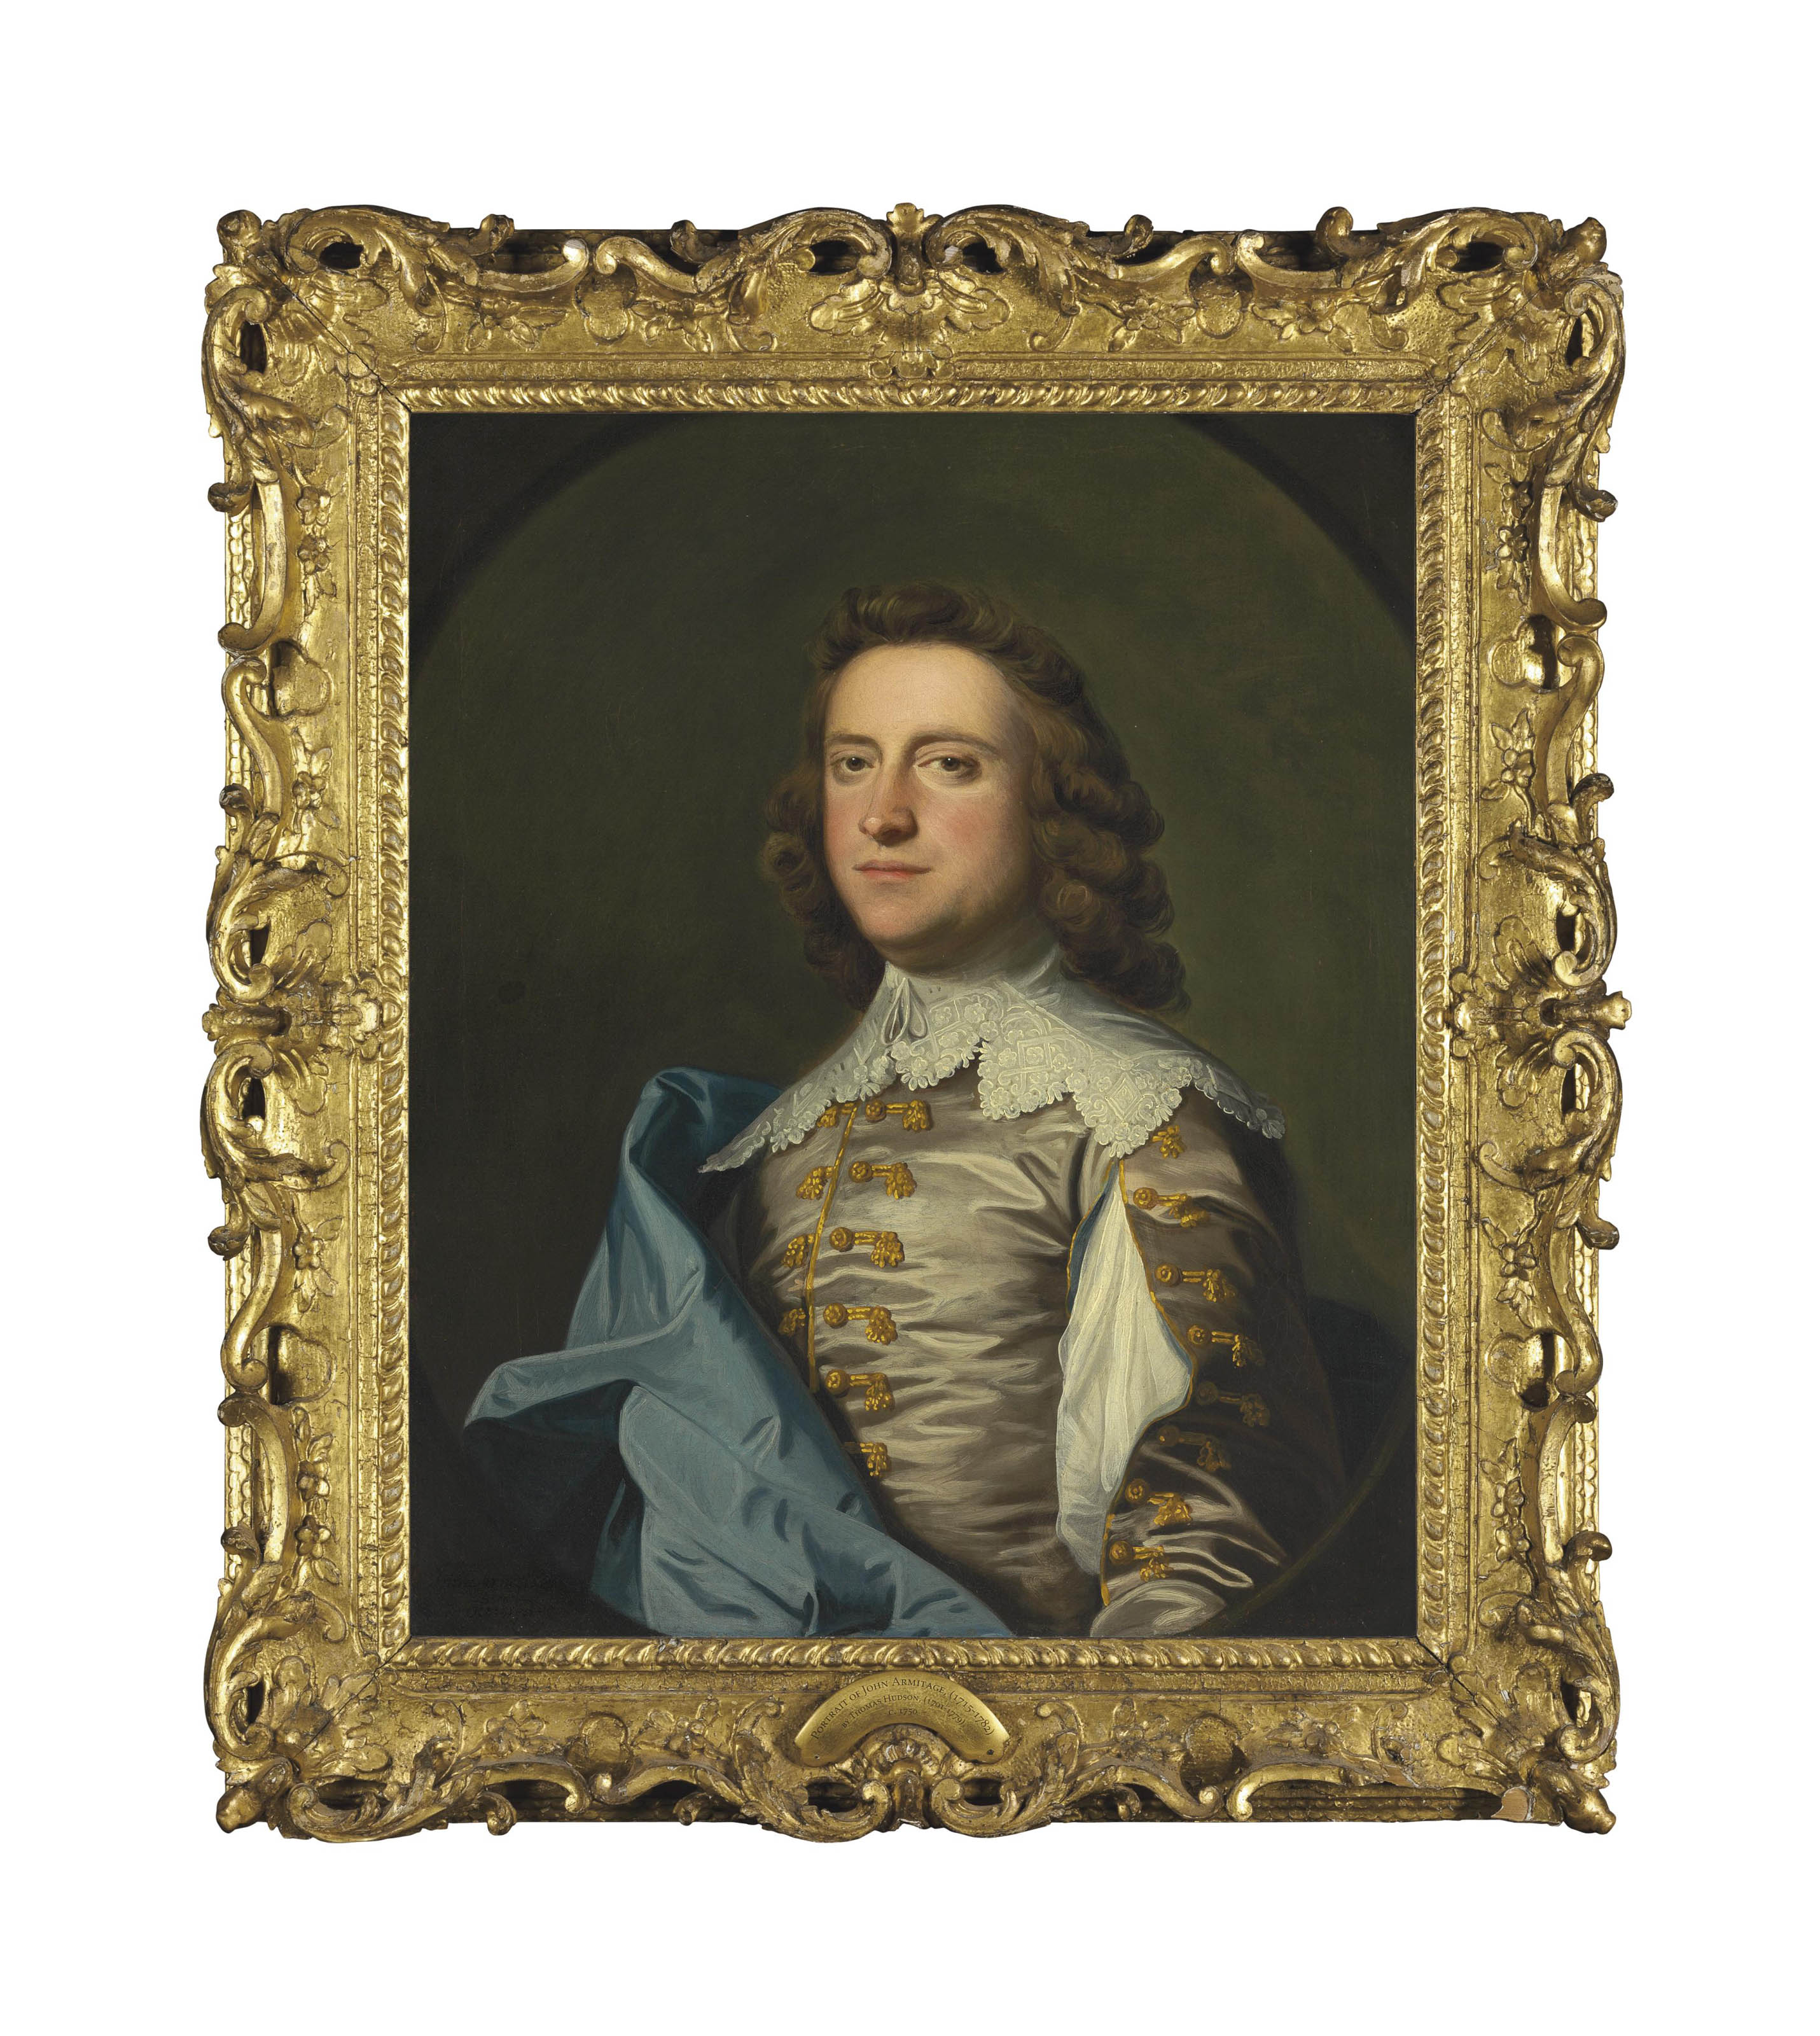 Portrait of John Armytage Esq., half-length, in Van Dyck costume, in a feigned oval